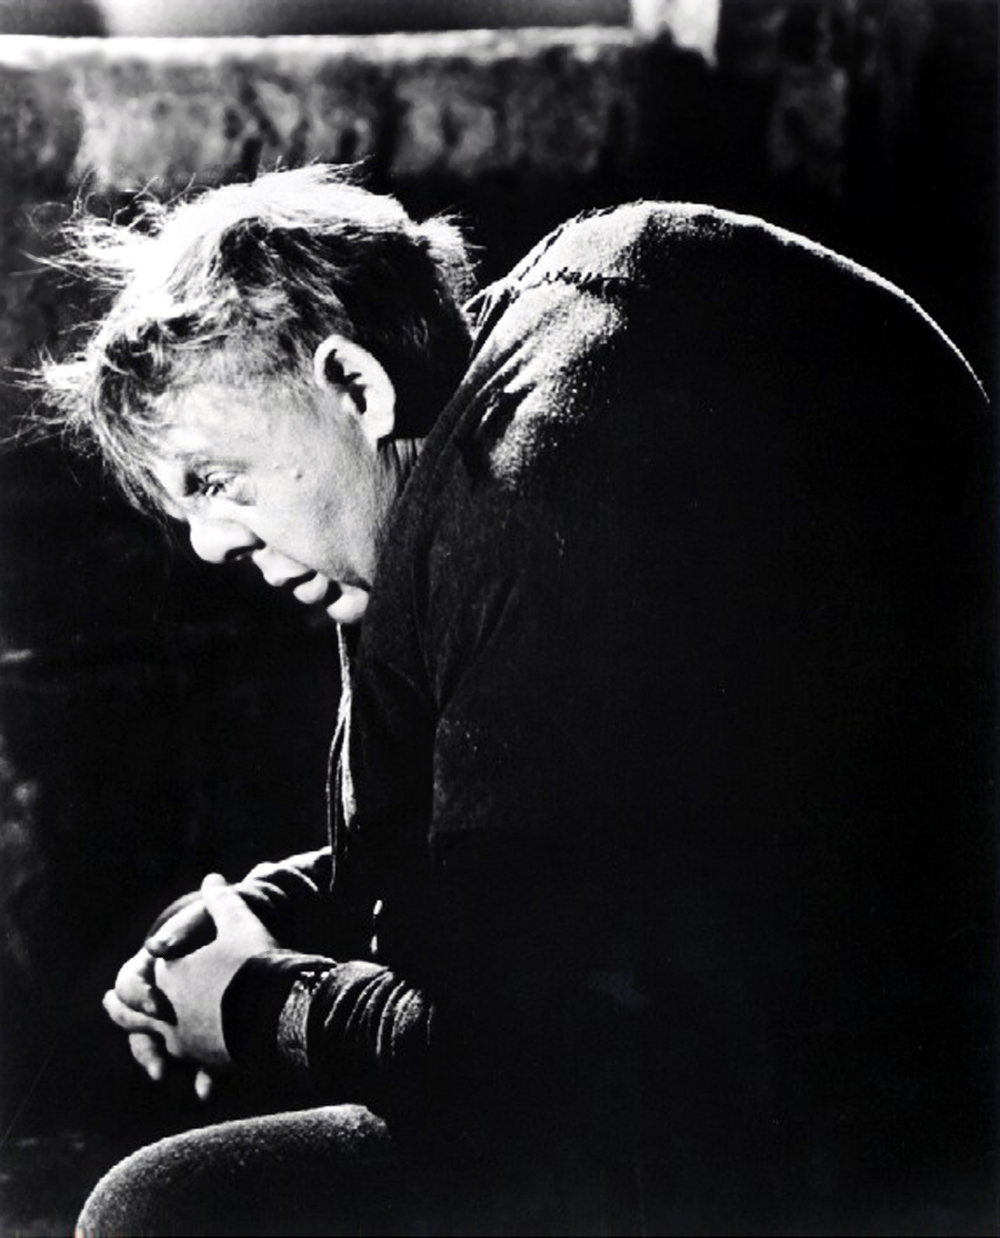 Charles Laughton as the hunchback of Notre Dame